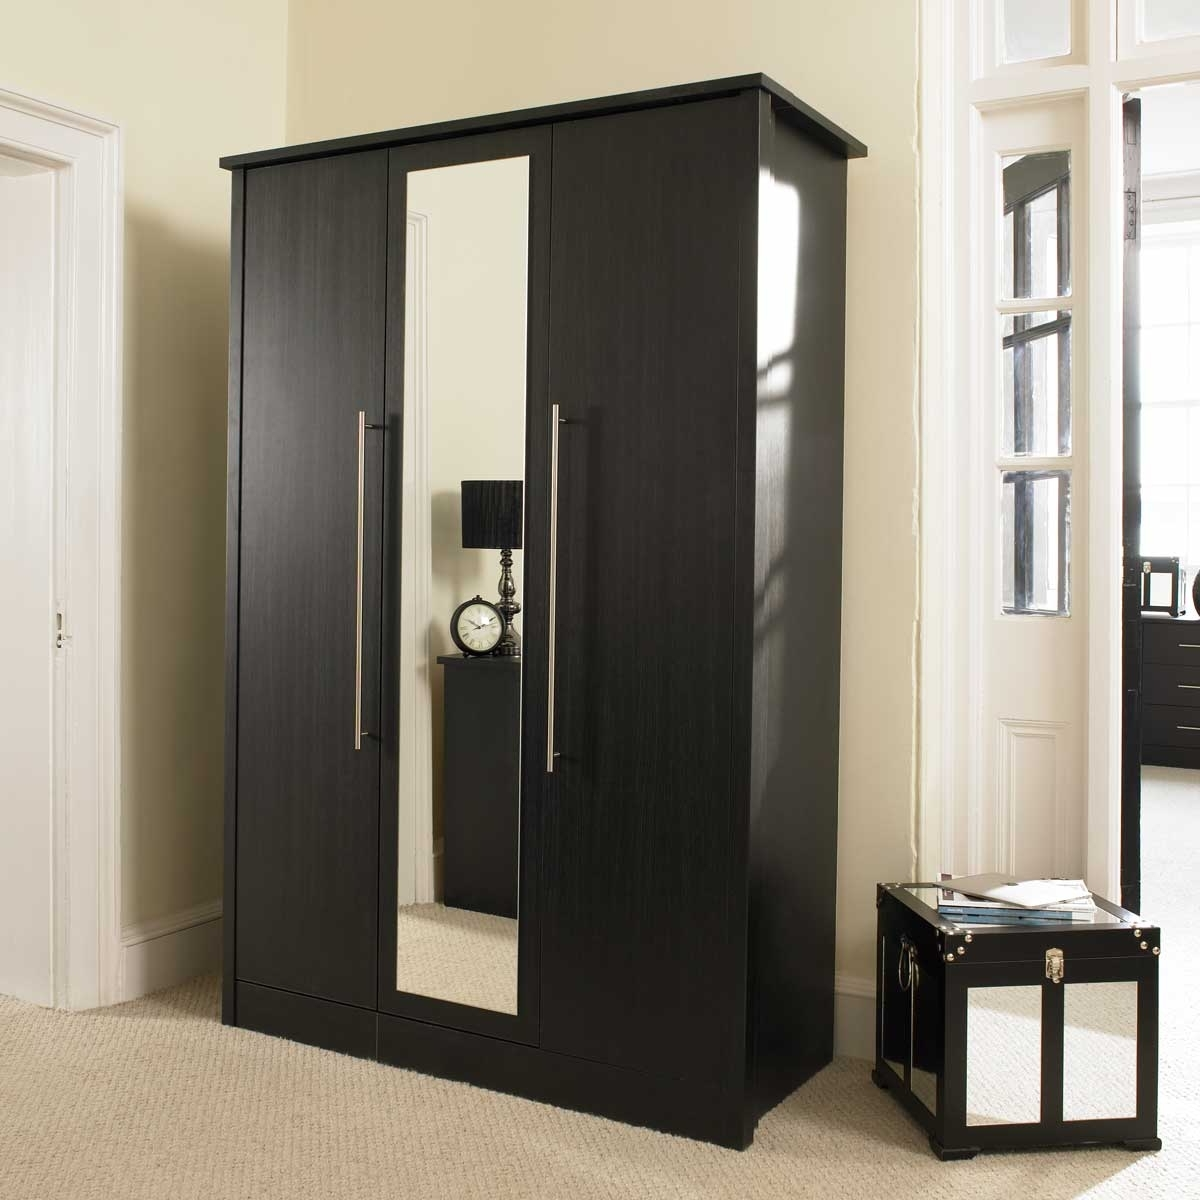 Cheap Black Wardrobes Intended For Preferred Furniture : Thin Wardrobe Tall Wardrobe Closet Cheap Wardrobe (View 5 of 15)